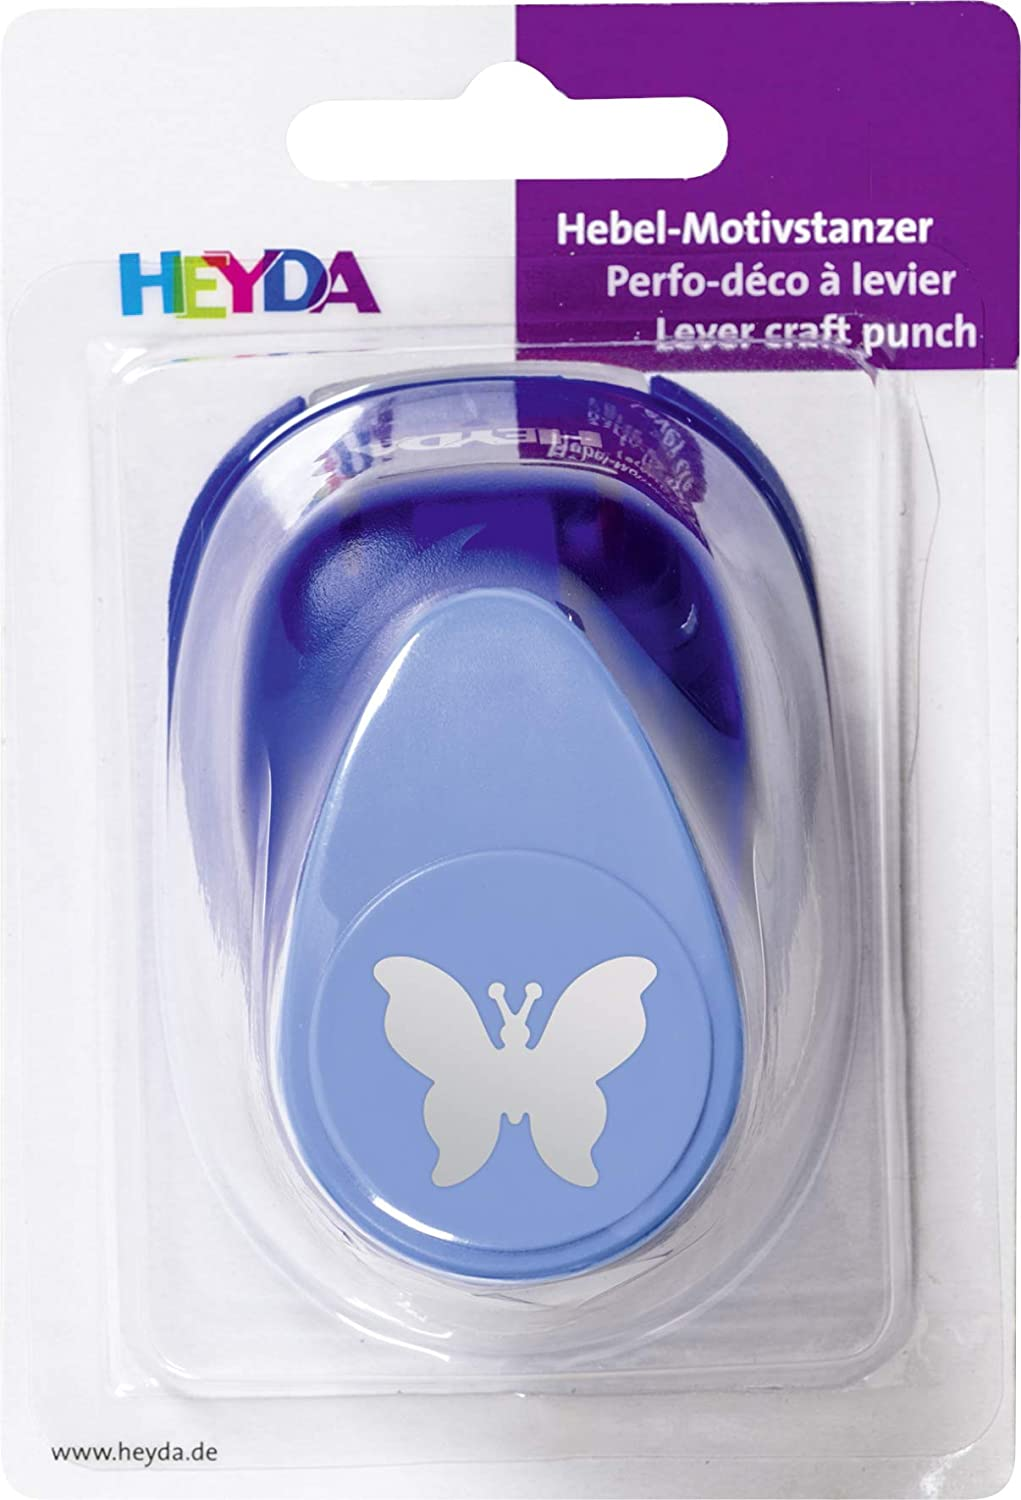 Heyda 203687545 Perforatrice Motif papillons Taille L env 2,5 cm